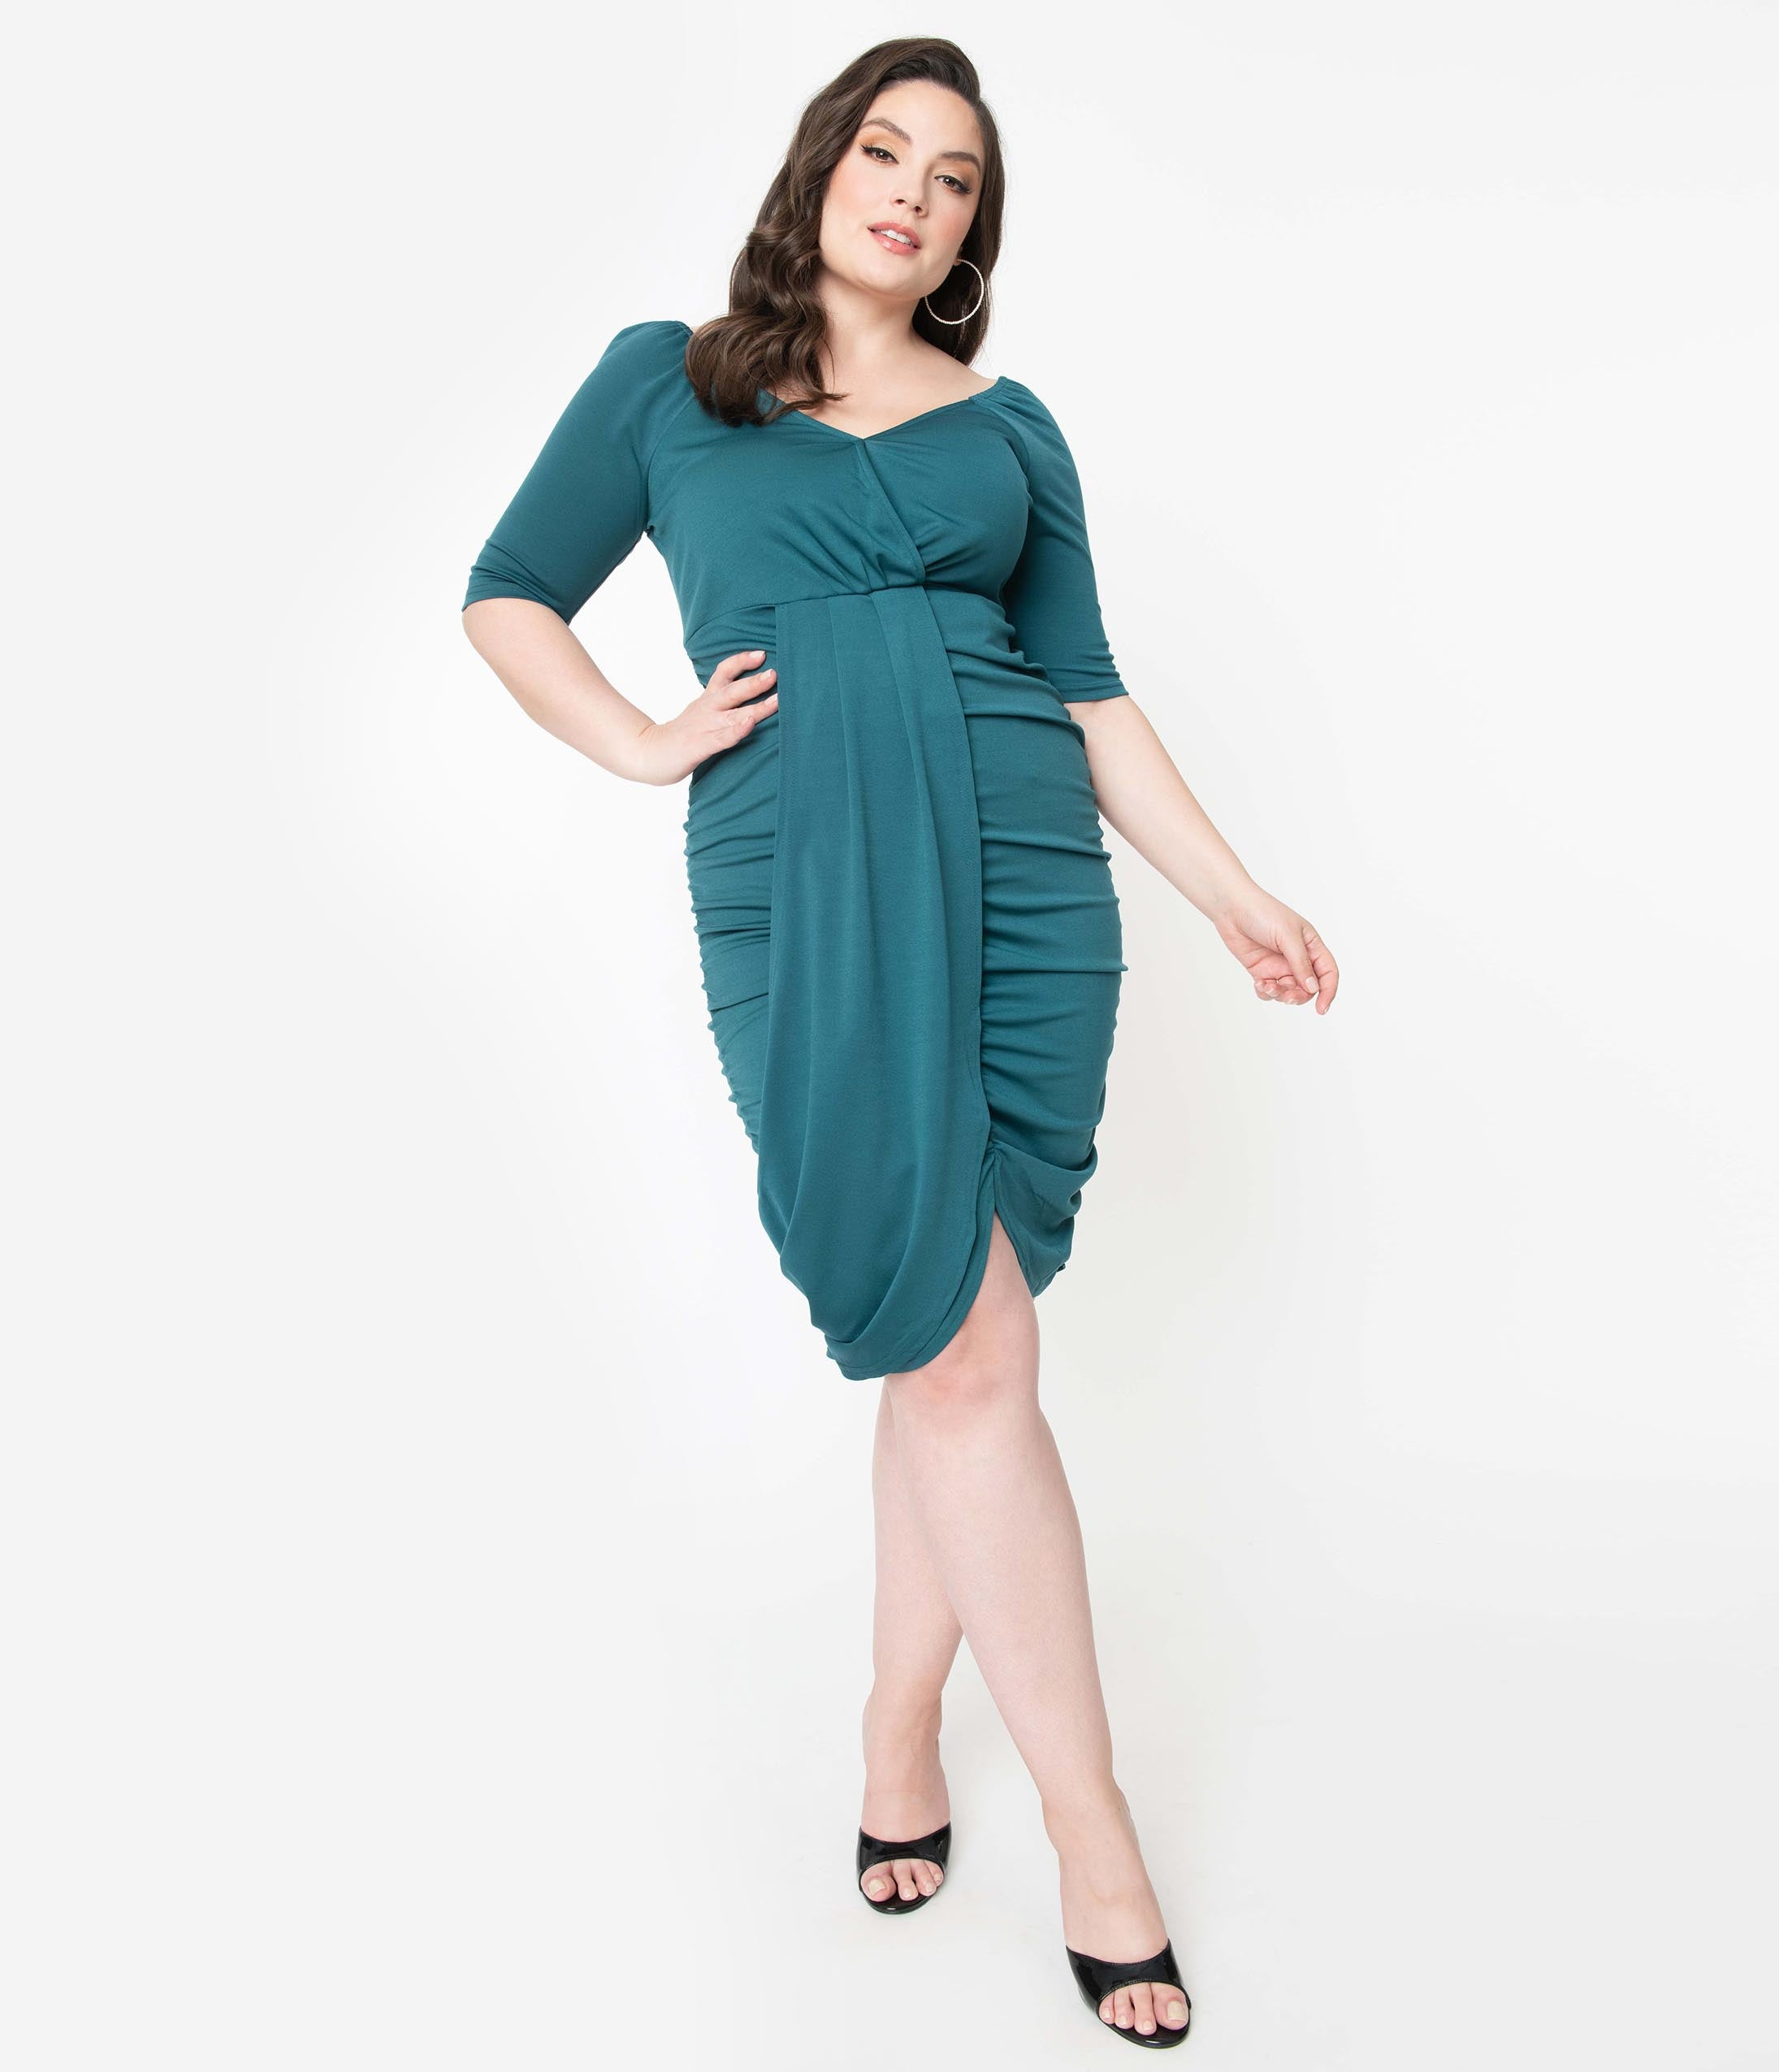 80s Dresses | Casual to Party Dresses Voodoo Vixen Plus Size 1970S Teal Green Georgina Bodycon Dress $78.00 AT vintagedancer.com